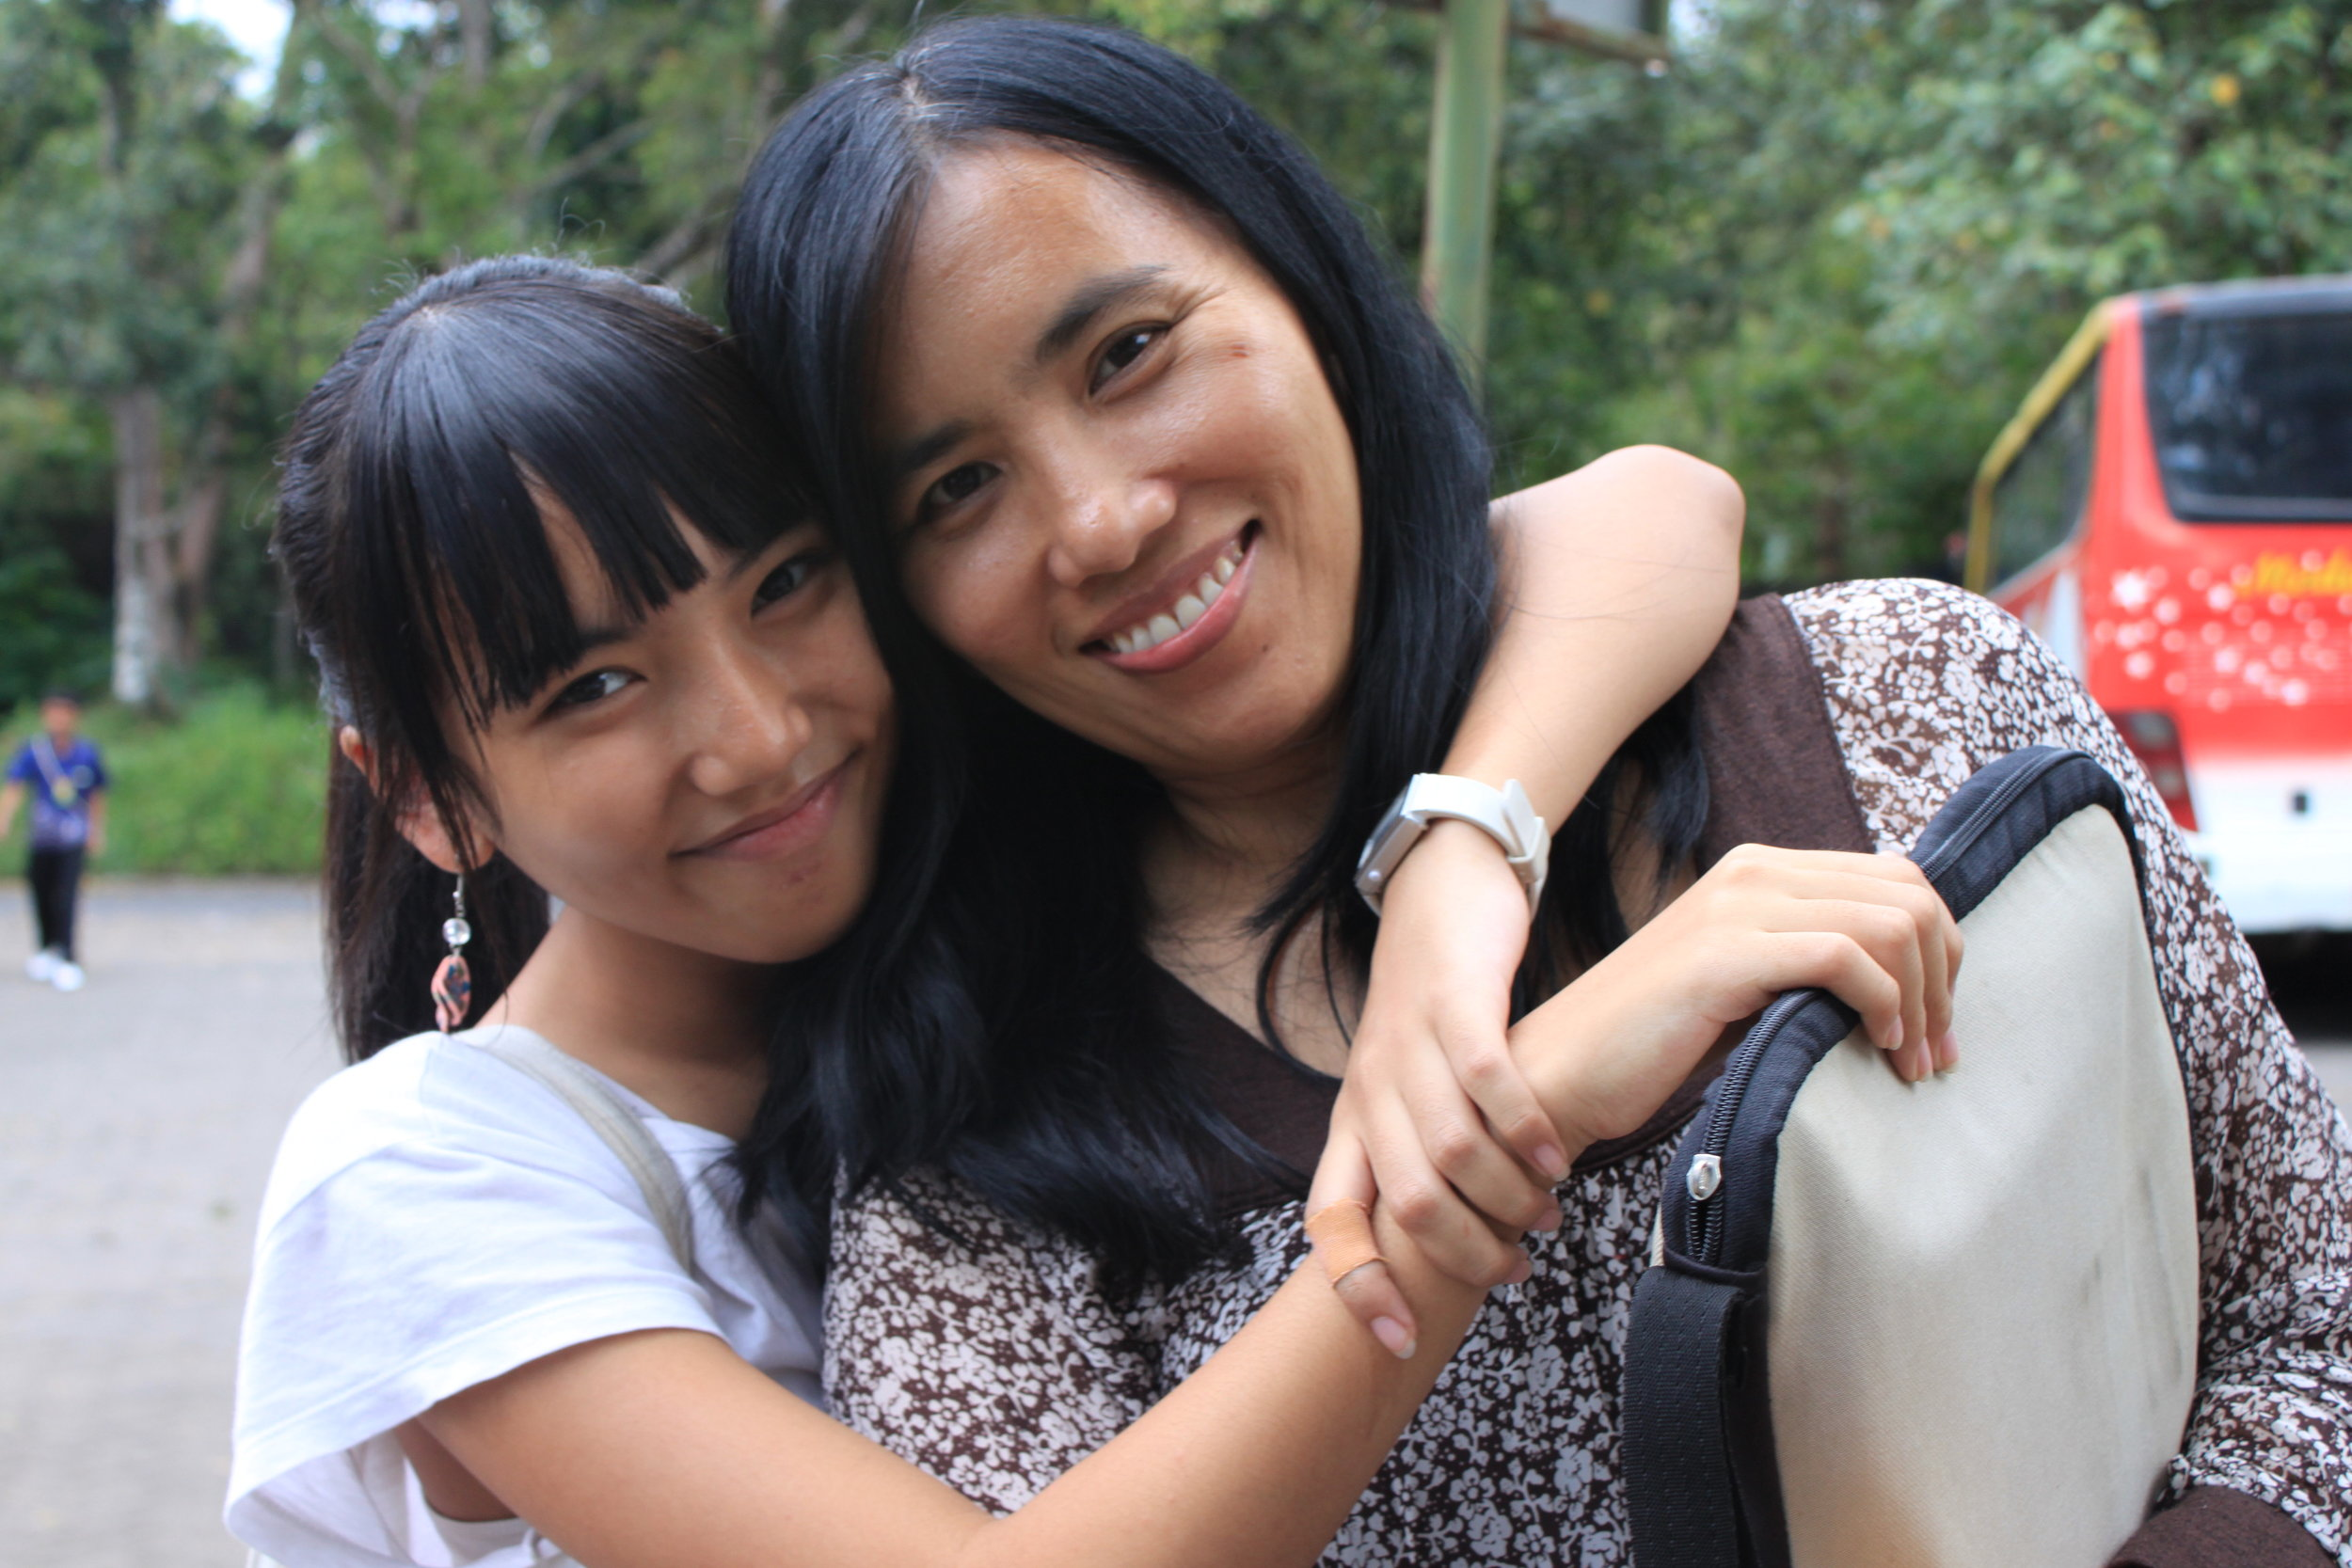 Twelvie Kina and supermom Janti